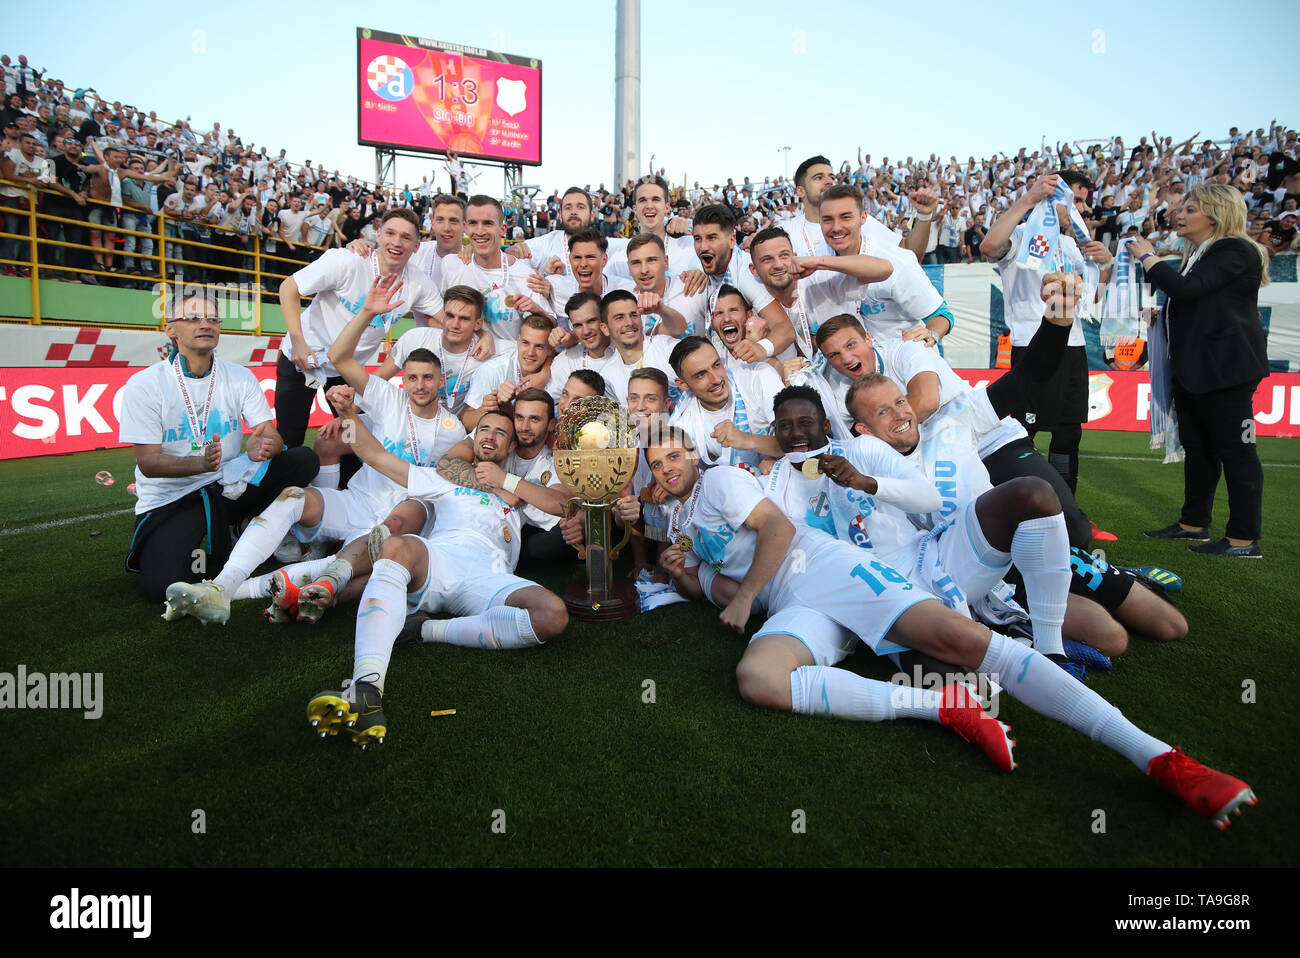 Pula, Croatia. 22nd May, 2019. Team Rijeka celebrate after defeating Dinamo Zagreb in the final of 2018-19 Croatian Football Cup at the Aldo Drosina Stadium in Pula, Croatia, May 22, 2019. Rijeka won 3-1. Credit: Igor Kralj/Xinhua/Alamy Live News Stock Photo